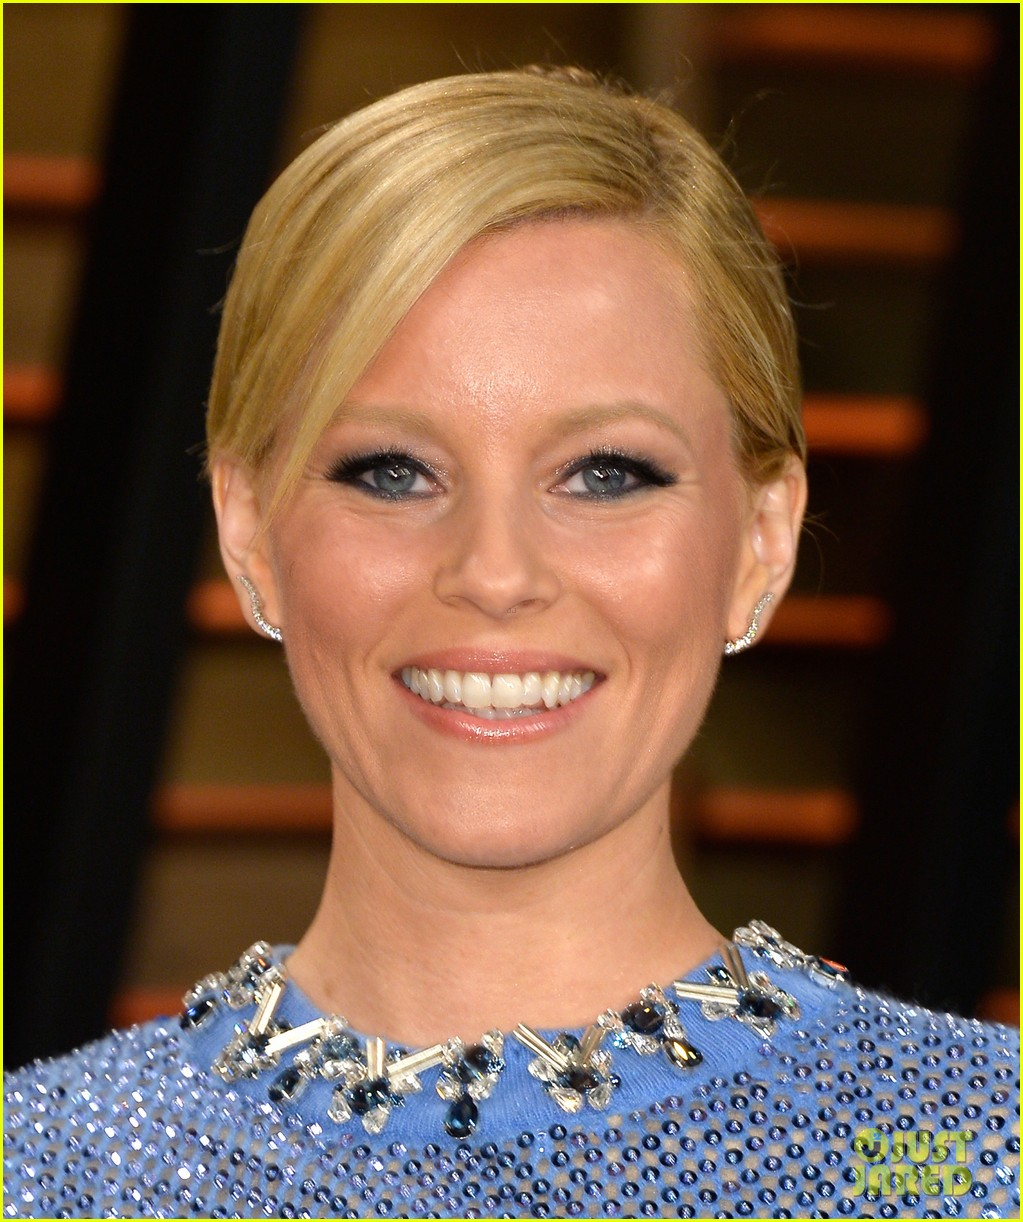 elizabeth banks shows off some skin in crop top at vanity fair oscars party 2014 033064406